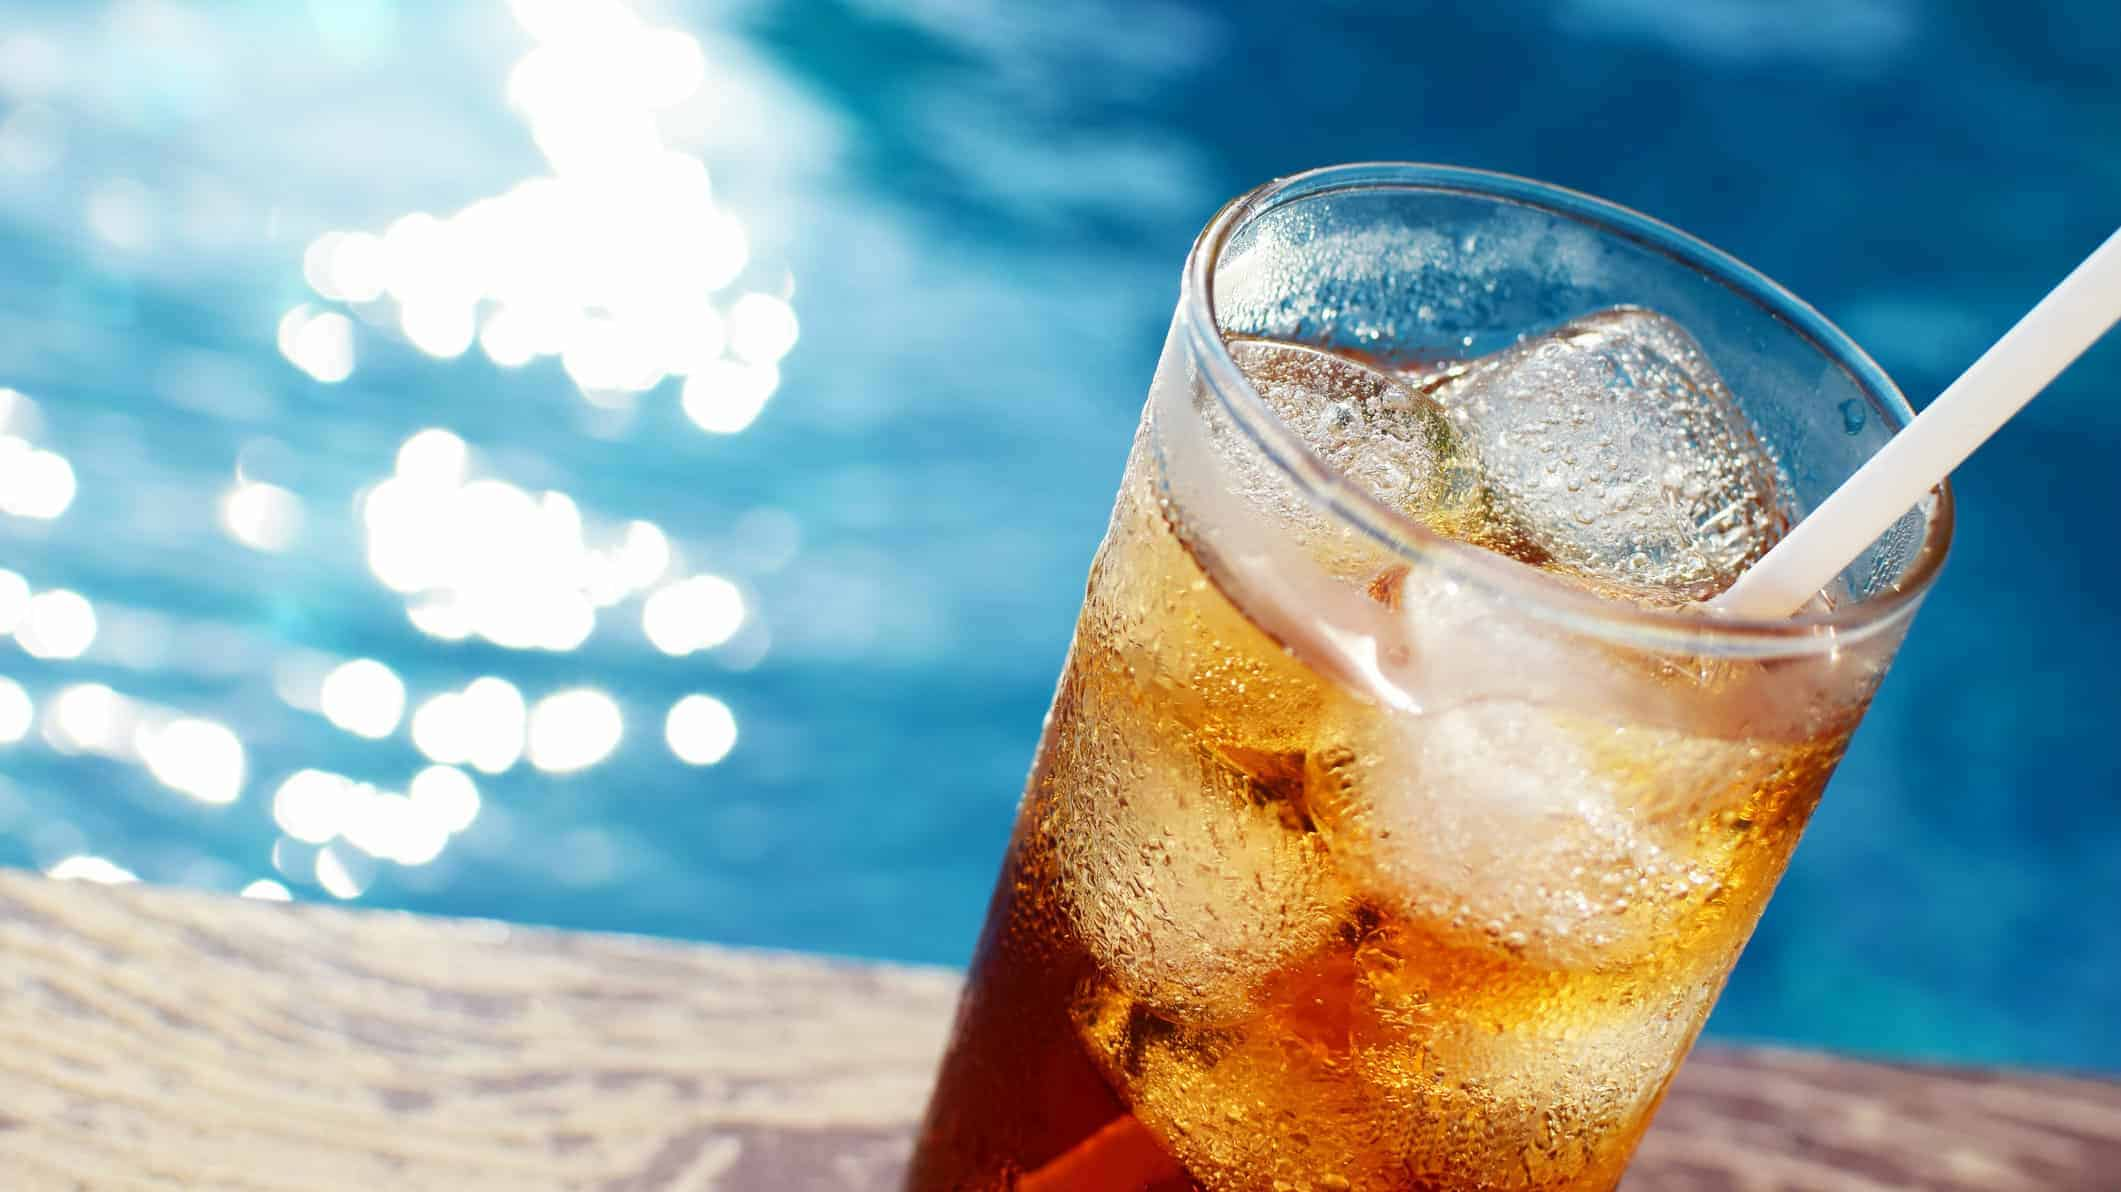 coca cola amiltal, cold drink, hot day, refreshment, thirst